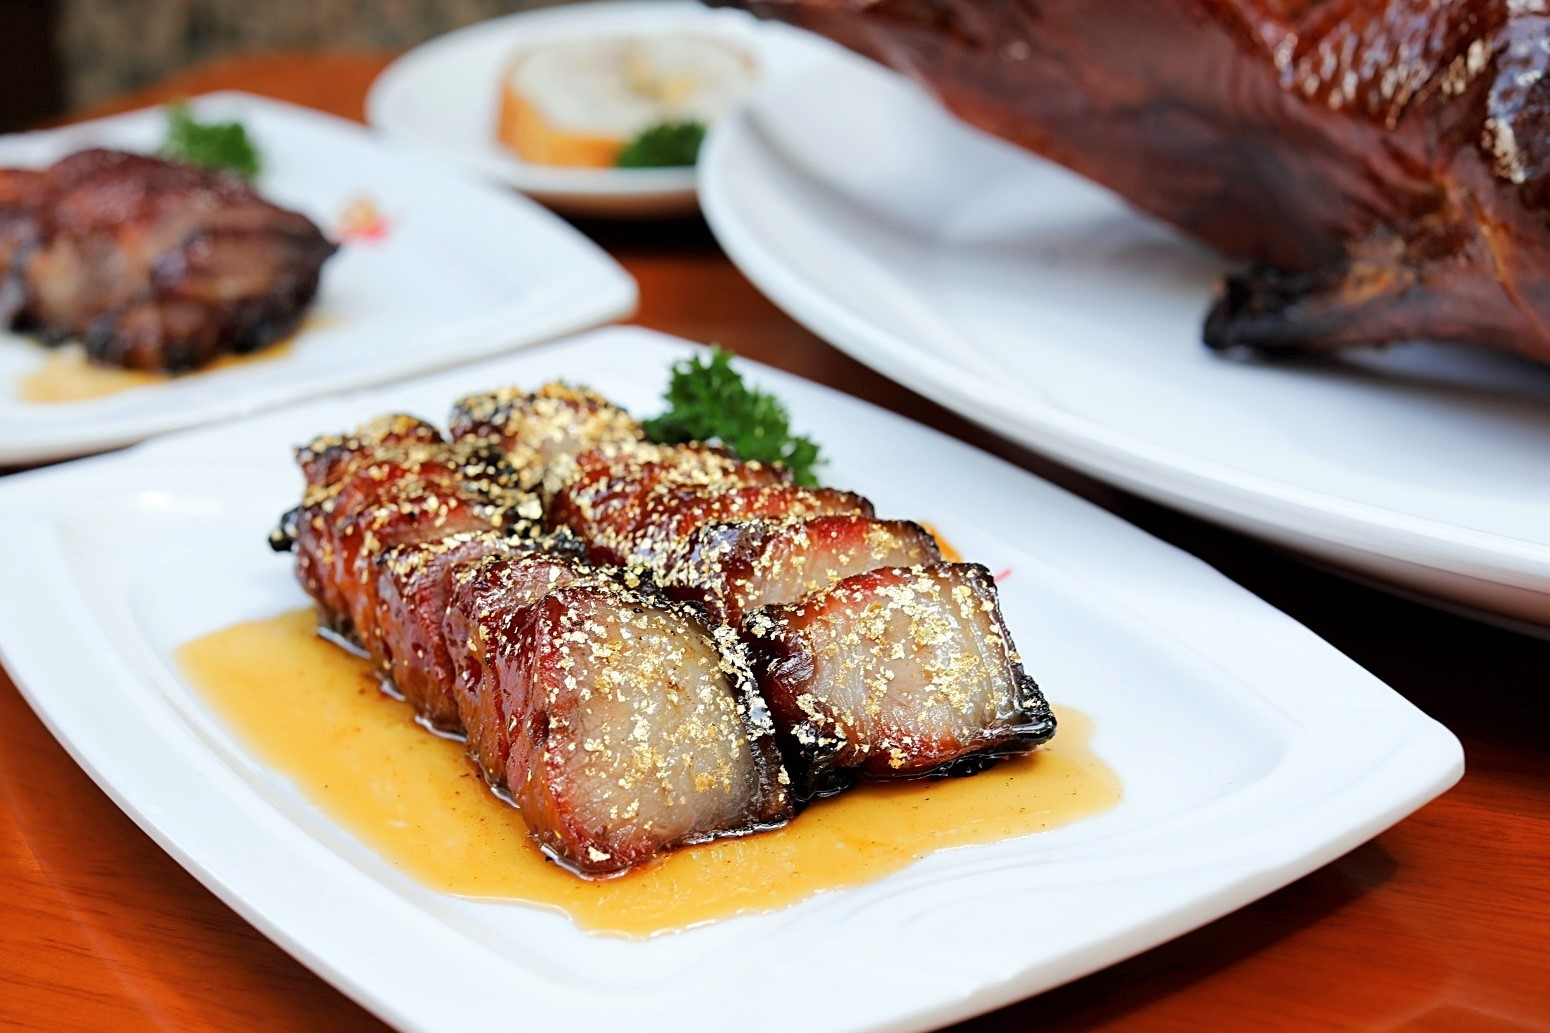 Kam's Roast Chinese New Year Takeaway Special – With Roast Duck, Iberico Char Siu and Crispy Roast Pork. Opened During CNY